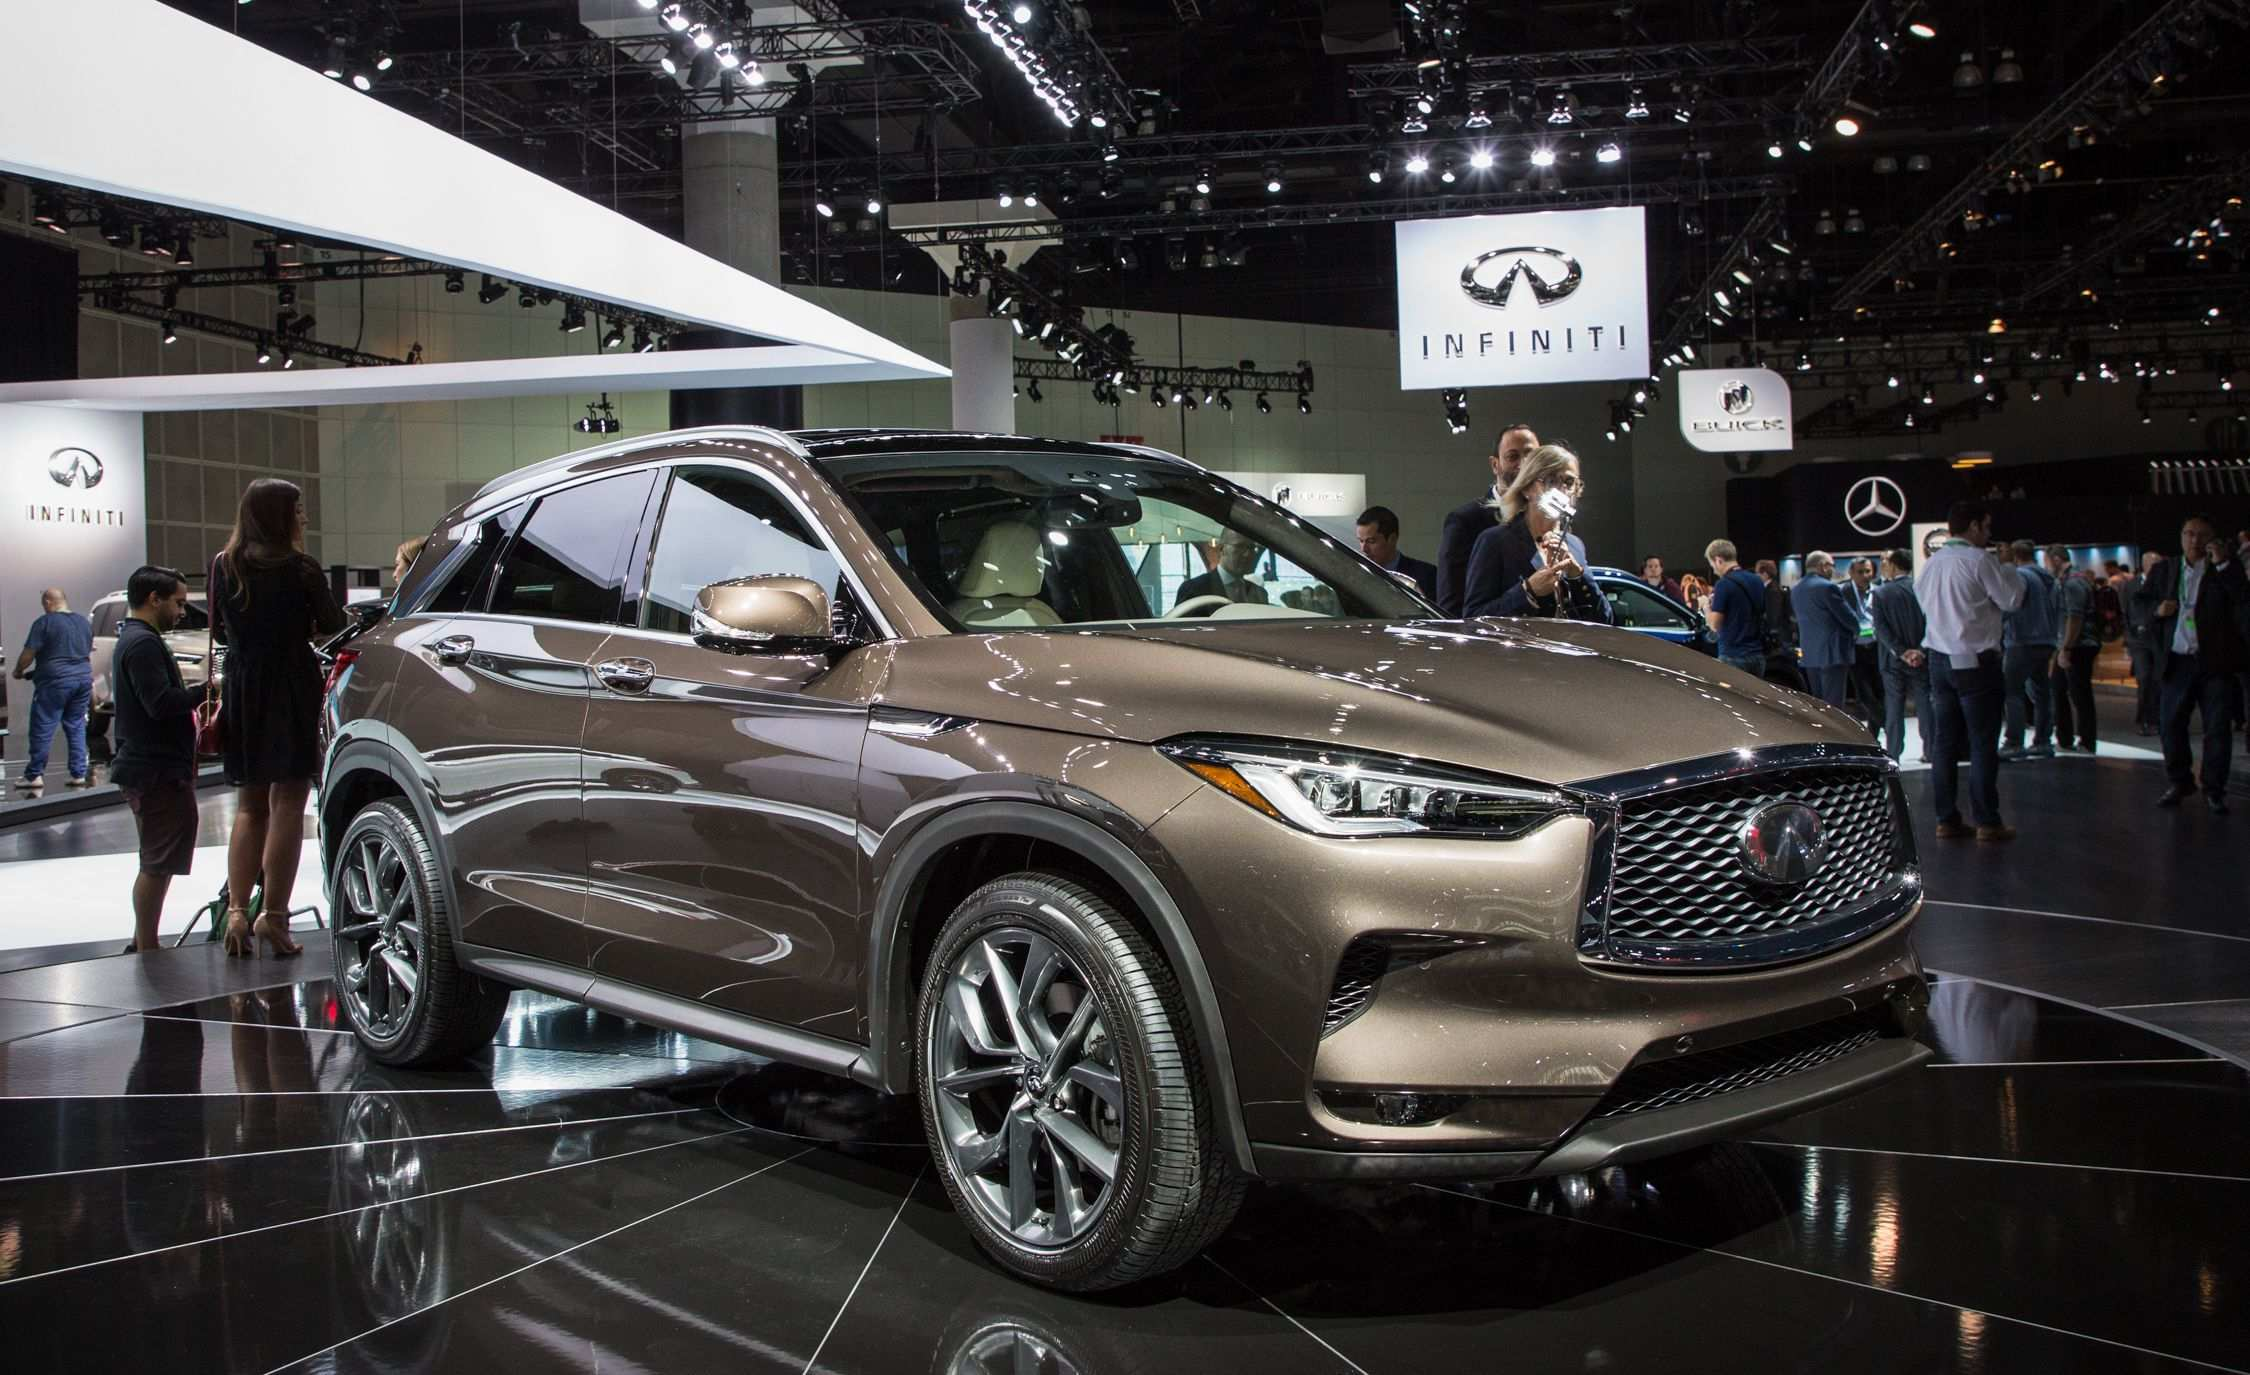 55 Gallery of 2020 Infiniti Qx50 Exterior Pictures for 2020 Infiniti Qx50 Exterior